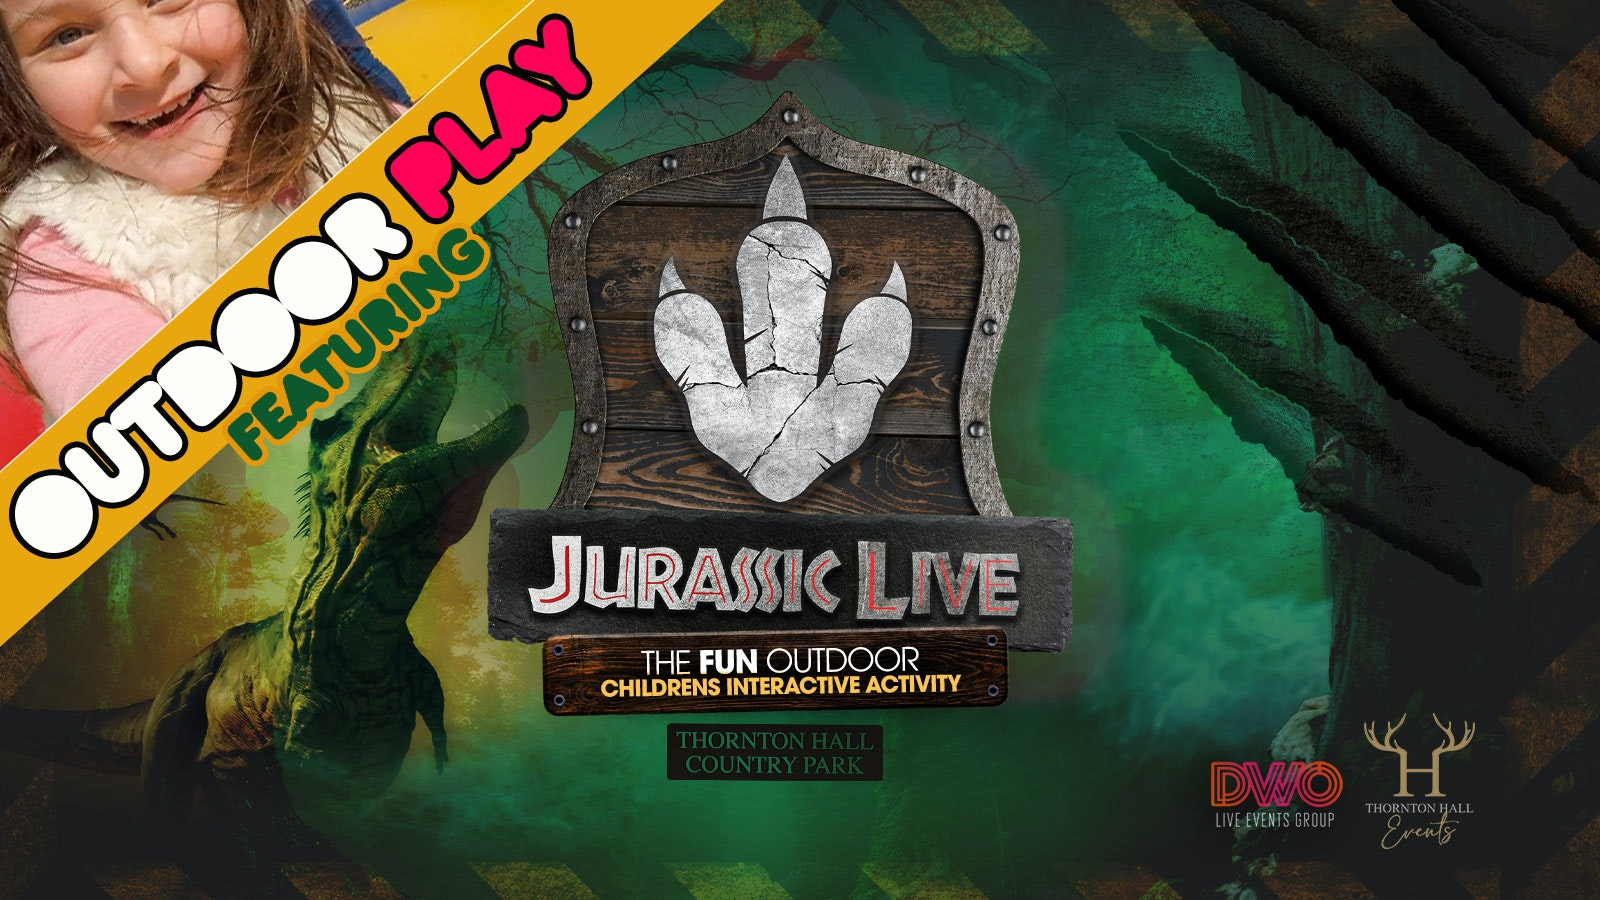 Jurassic Live inc Outdoor Play (Am) – Saturday 24th April – 12noon